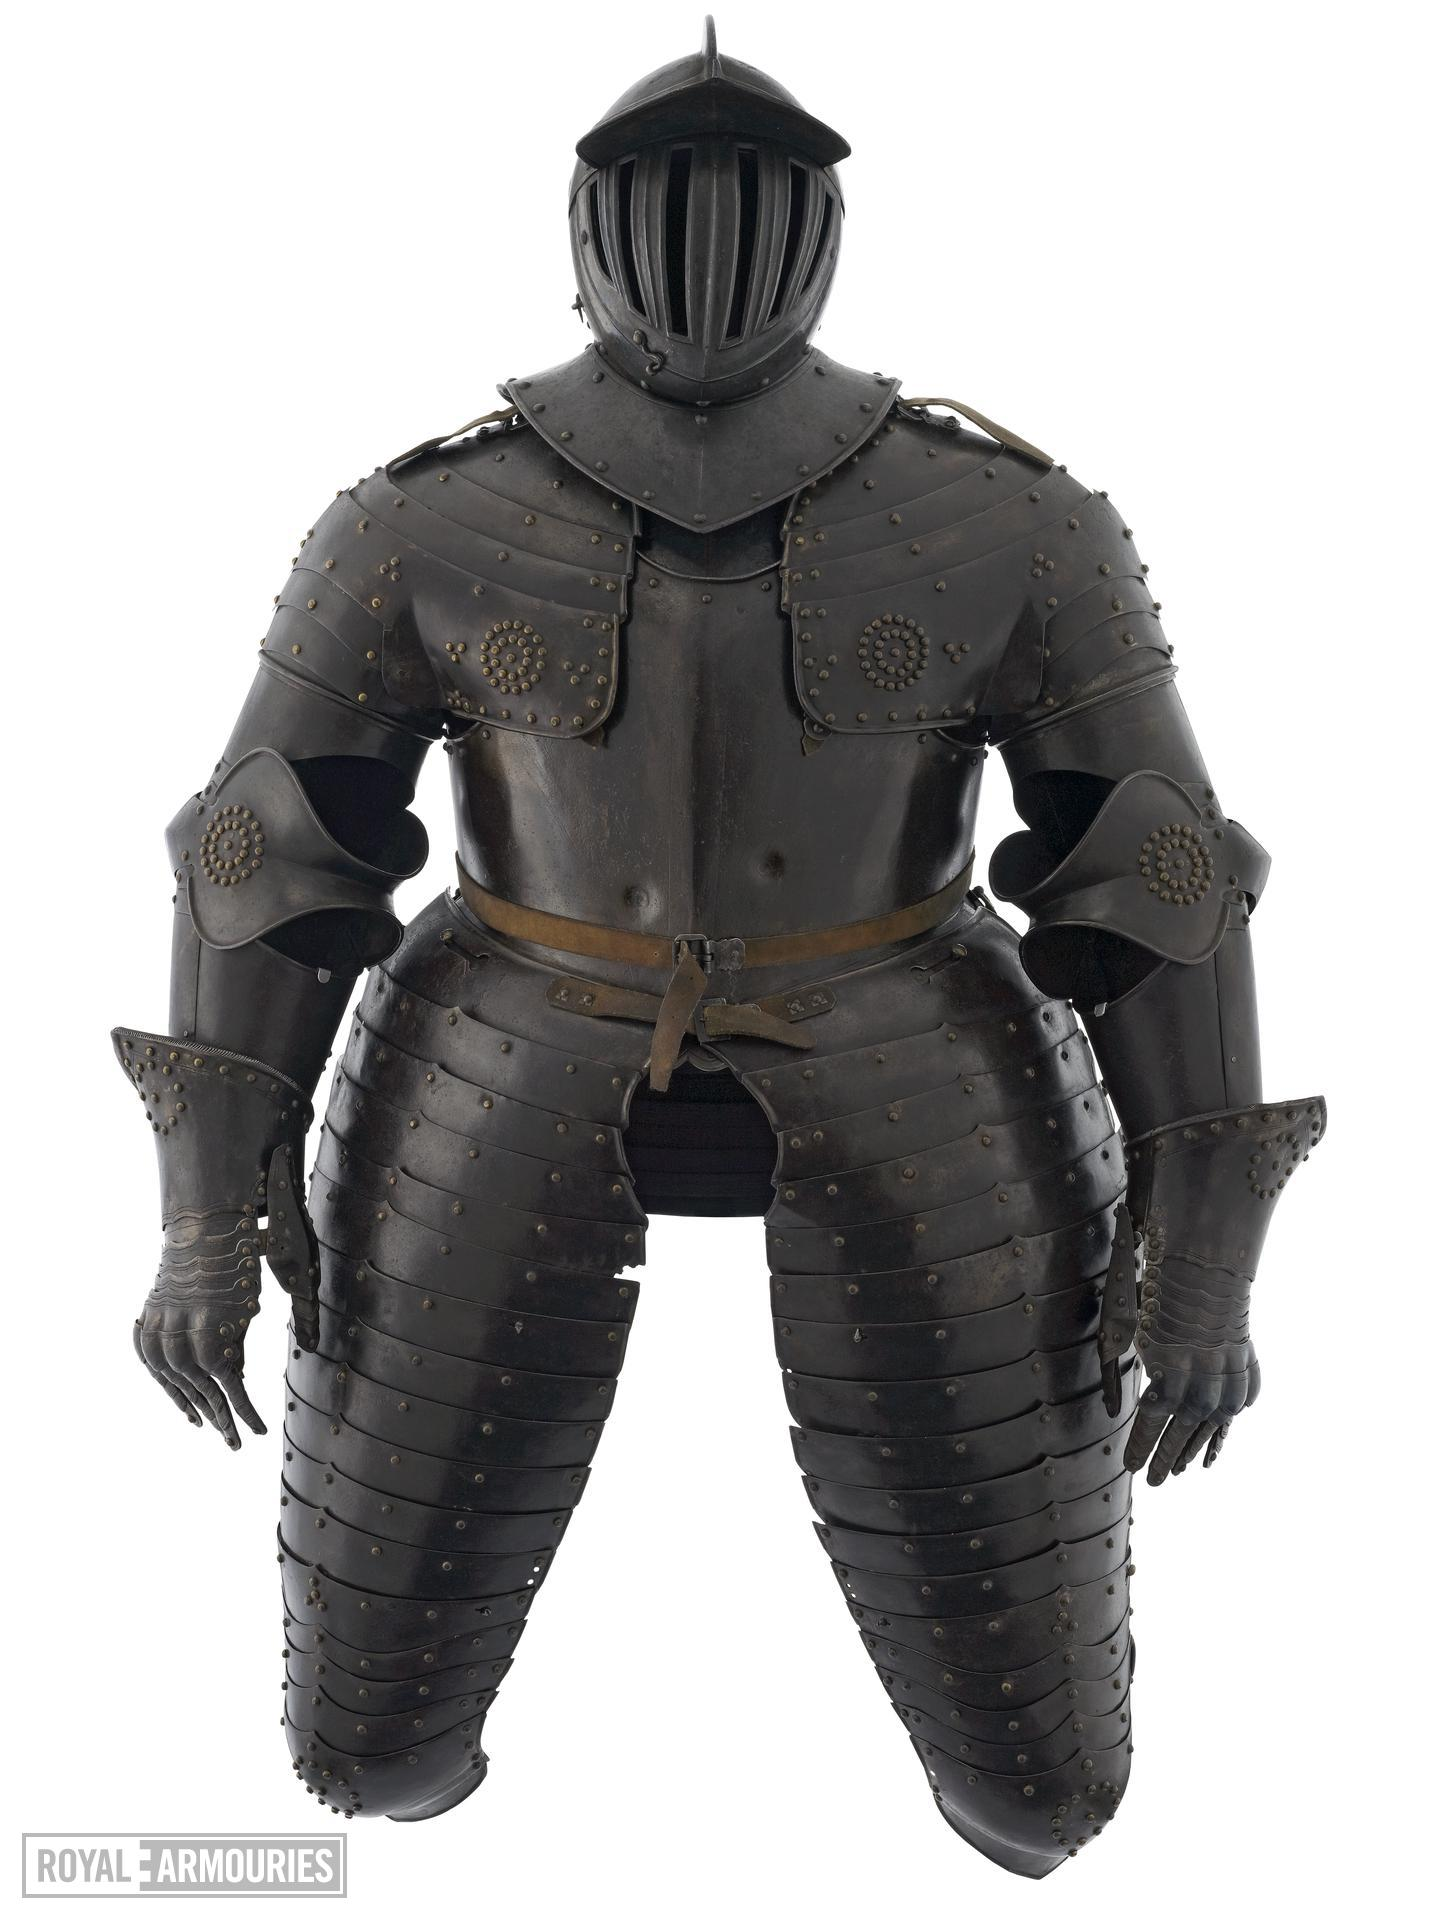 Cuirassier's field armour Consists of close helmet, breastplate, backplate, culet, tassets, pauldrons, vambrace and gauntlets.